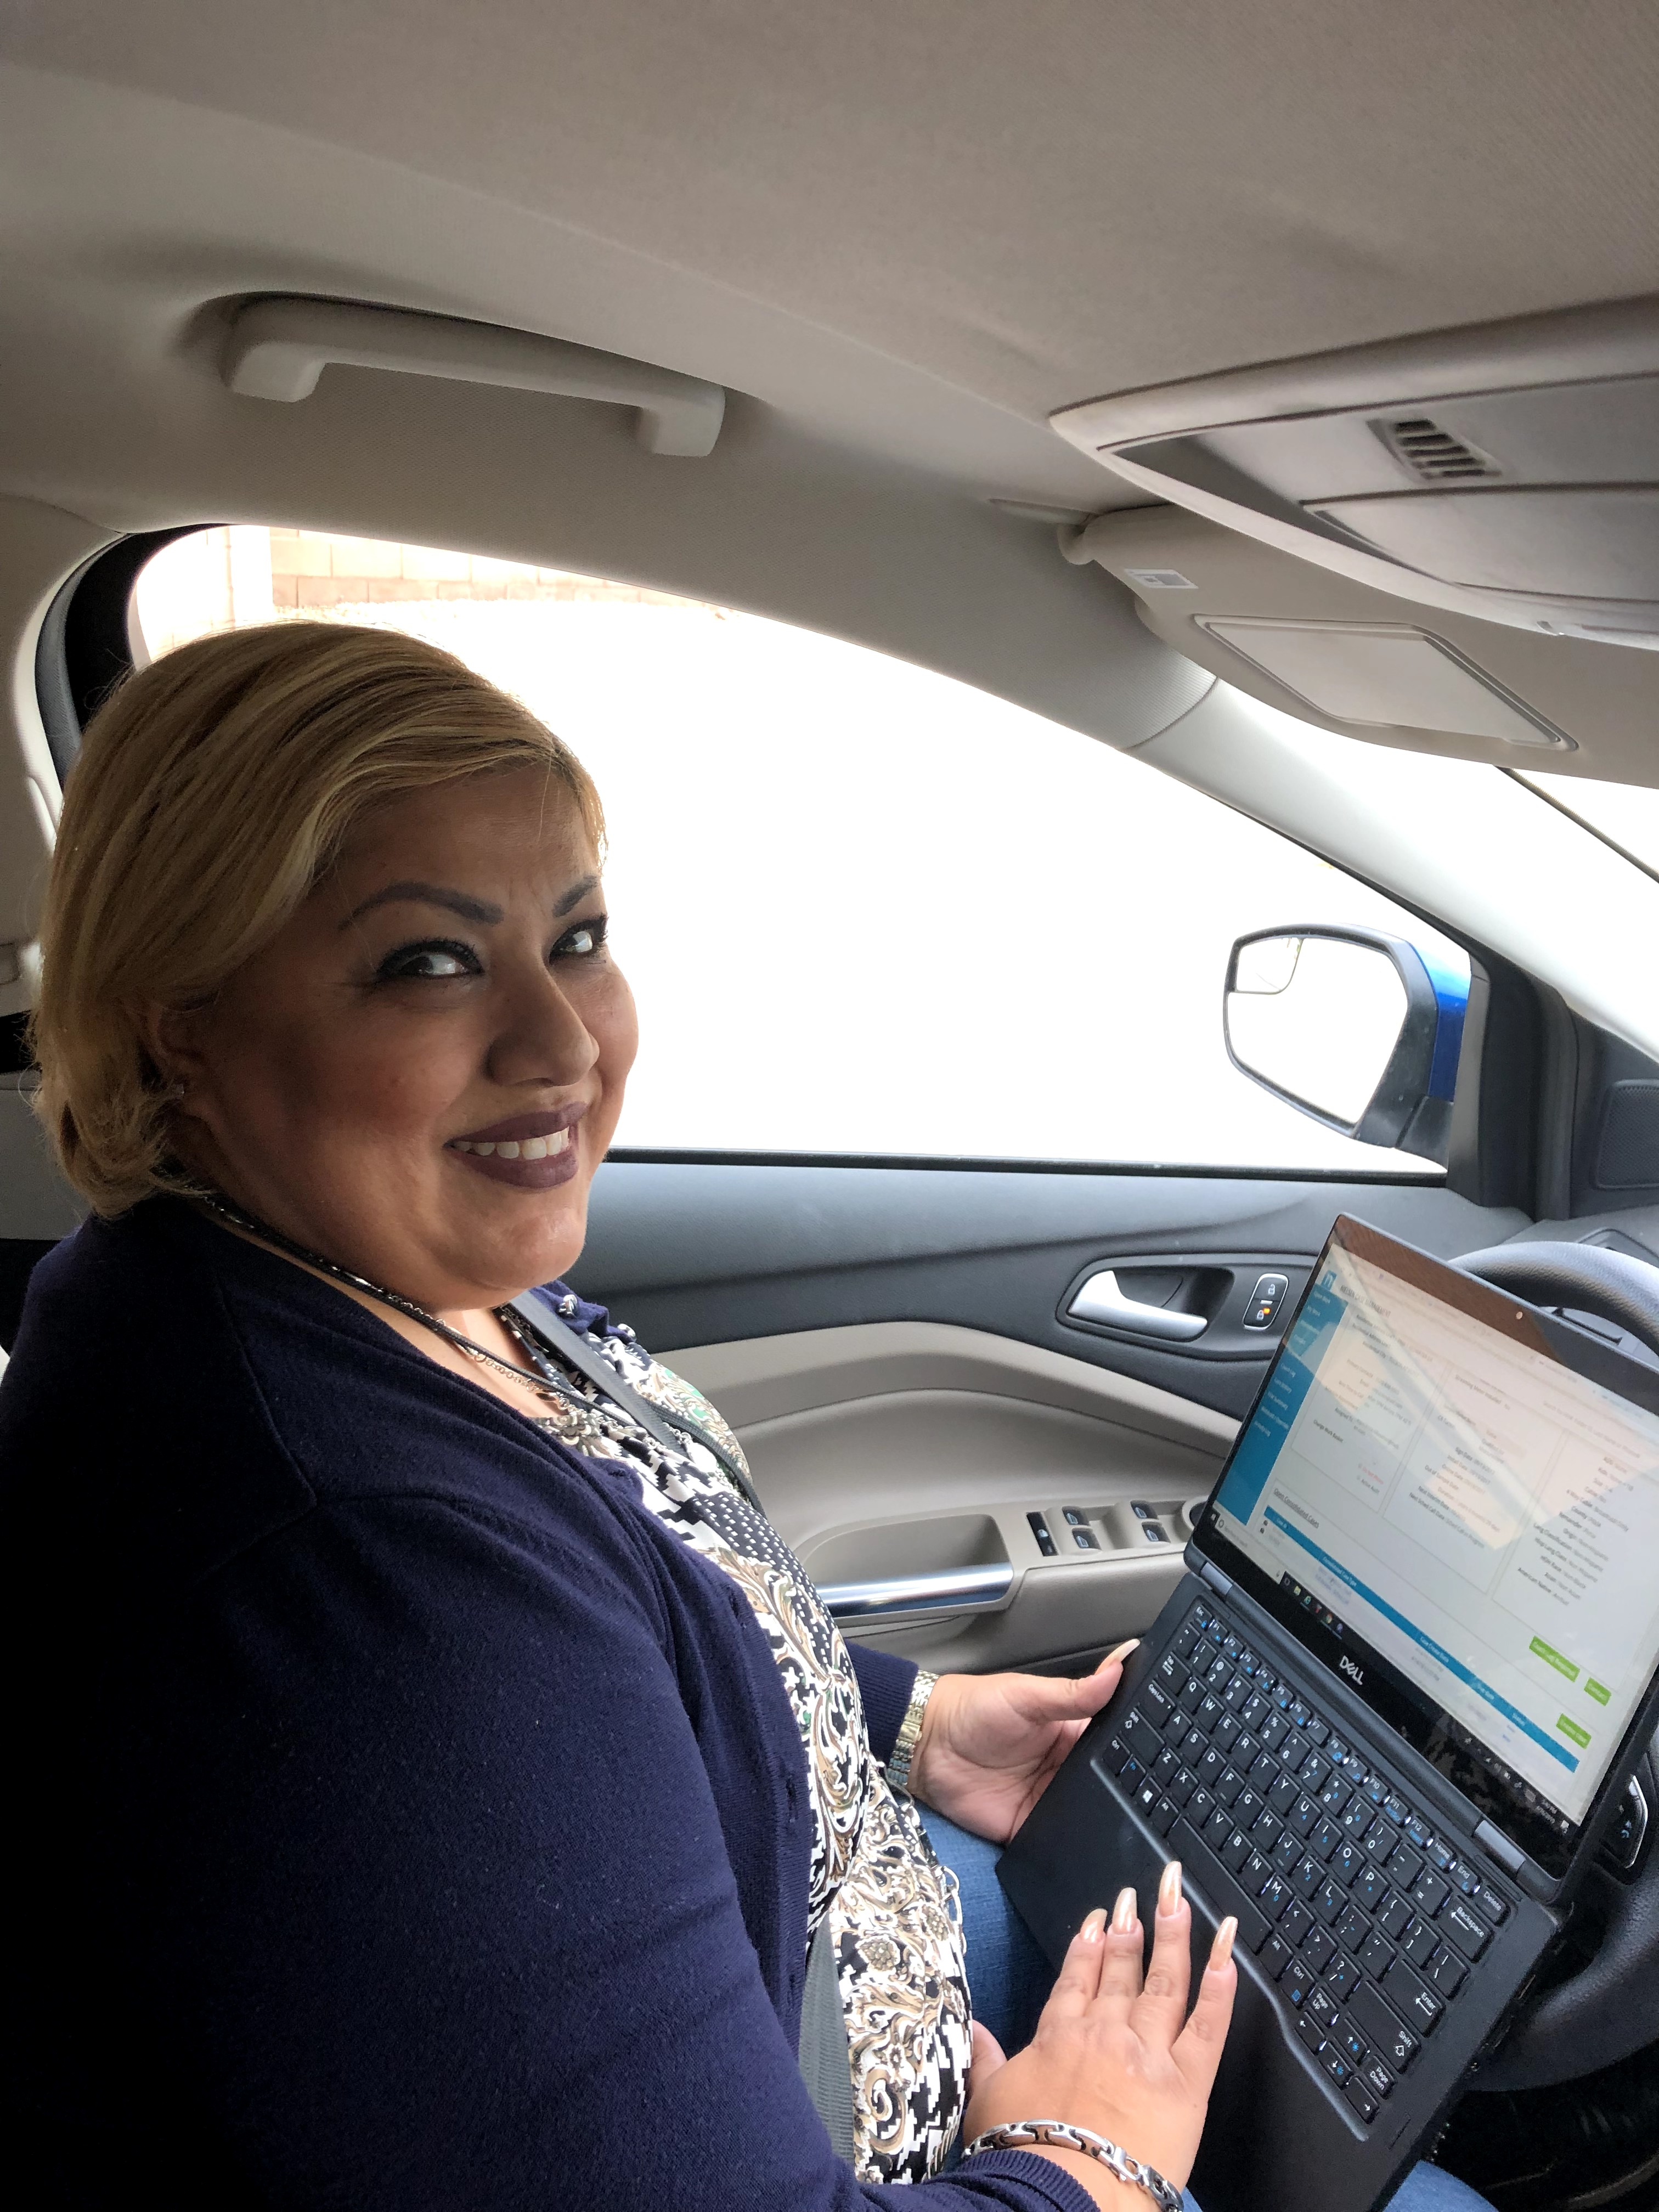 Nielsen Representative with a laptop in her car